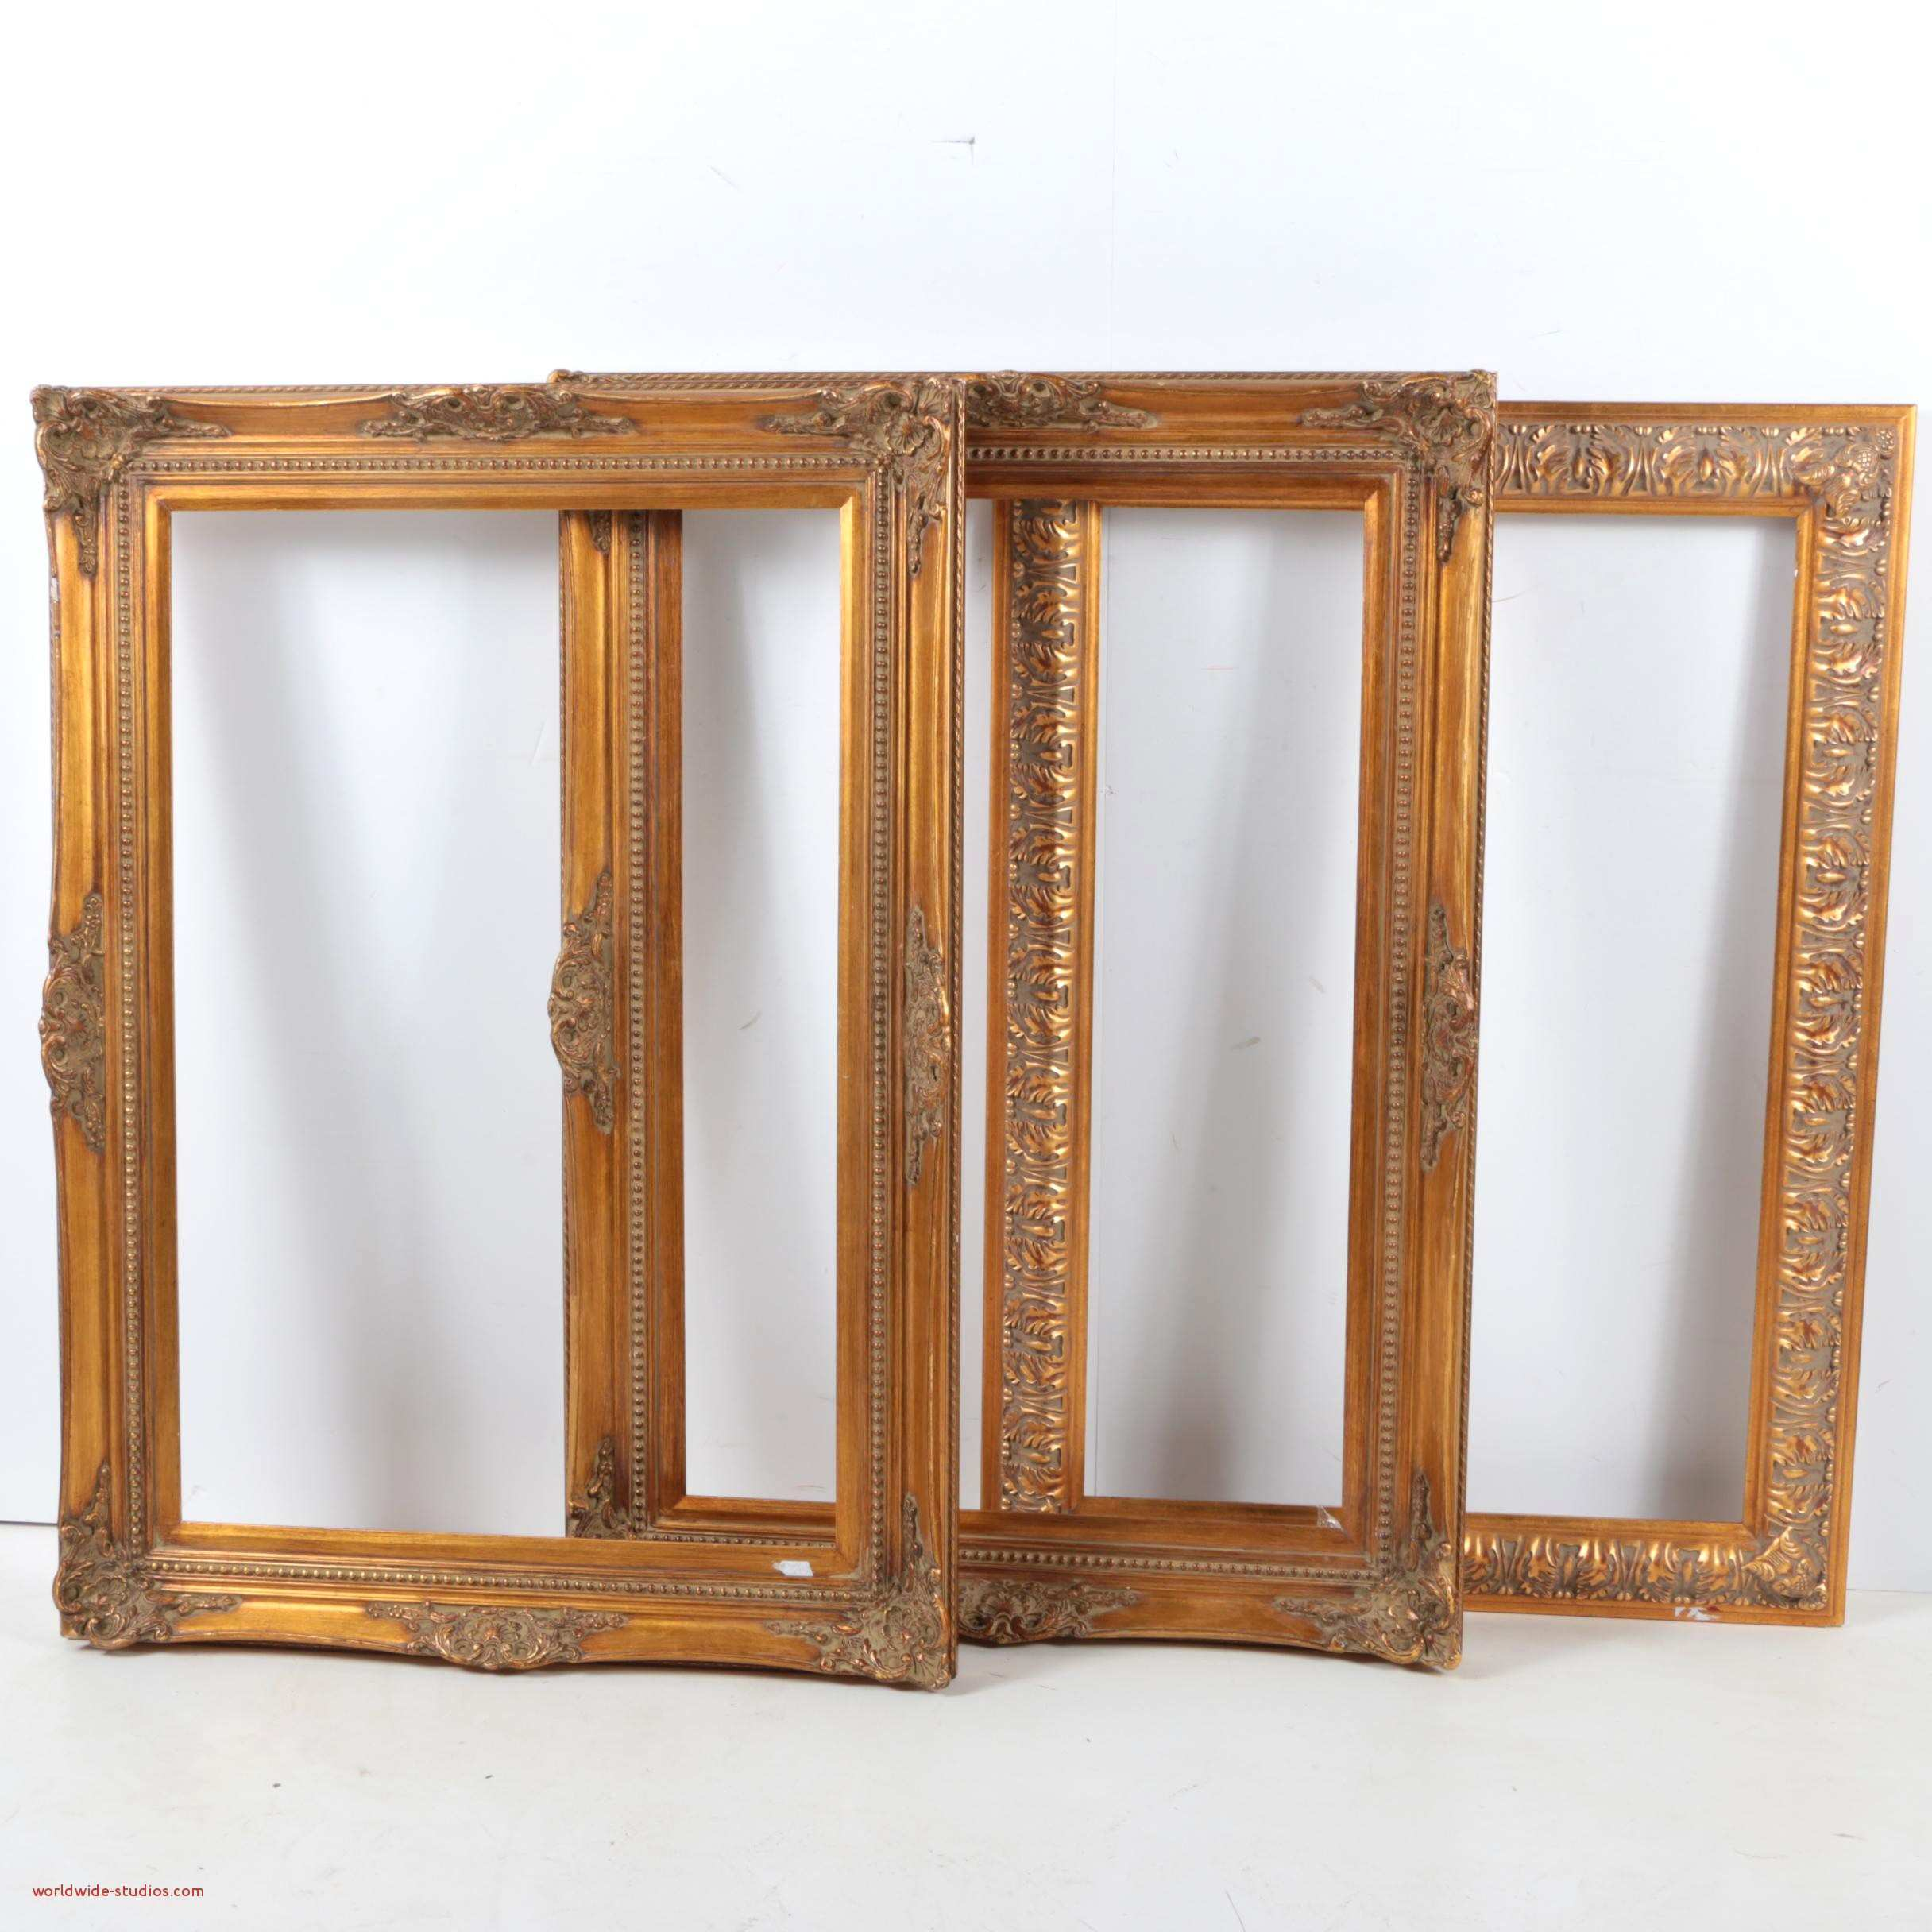 Top Result Diy Wood Frame for Mirror Elegant Decorative Wooden